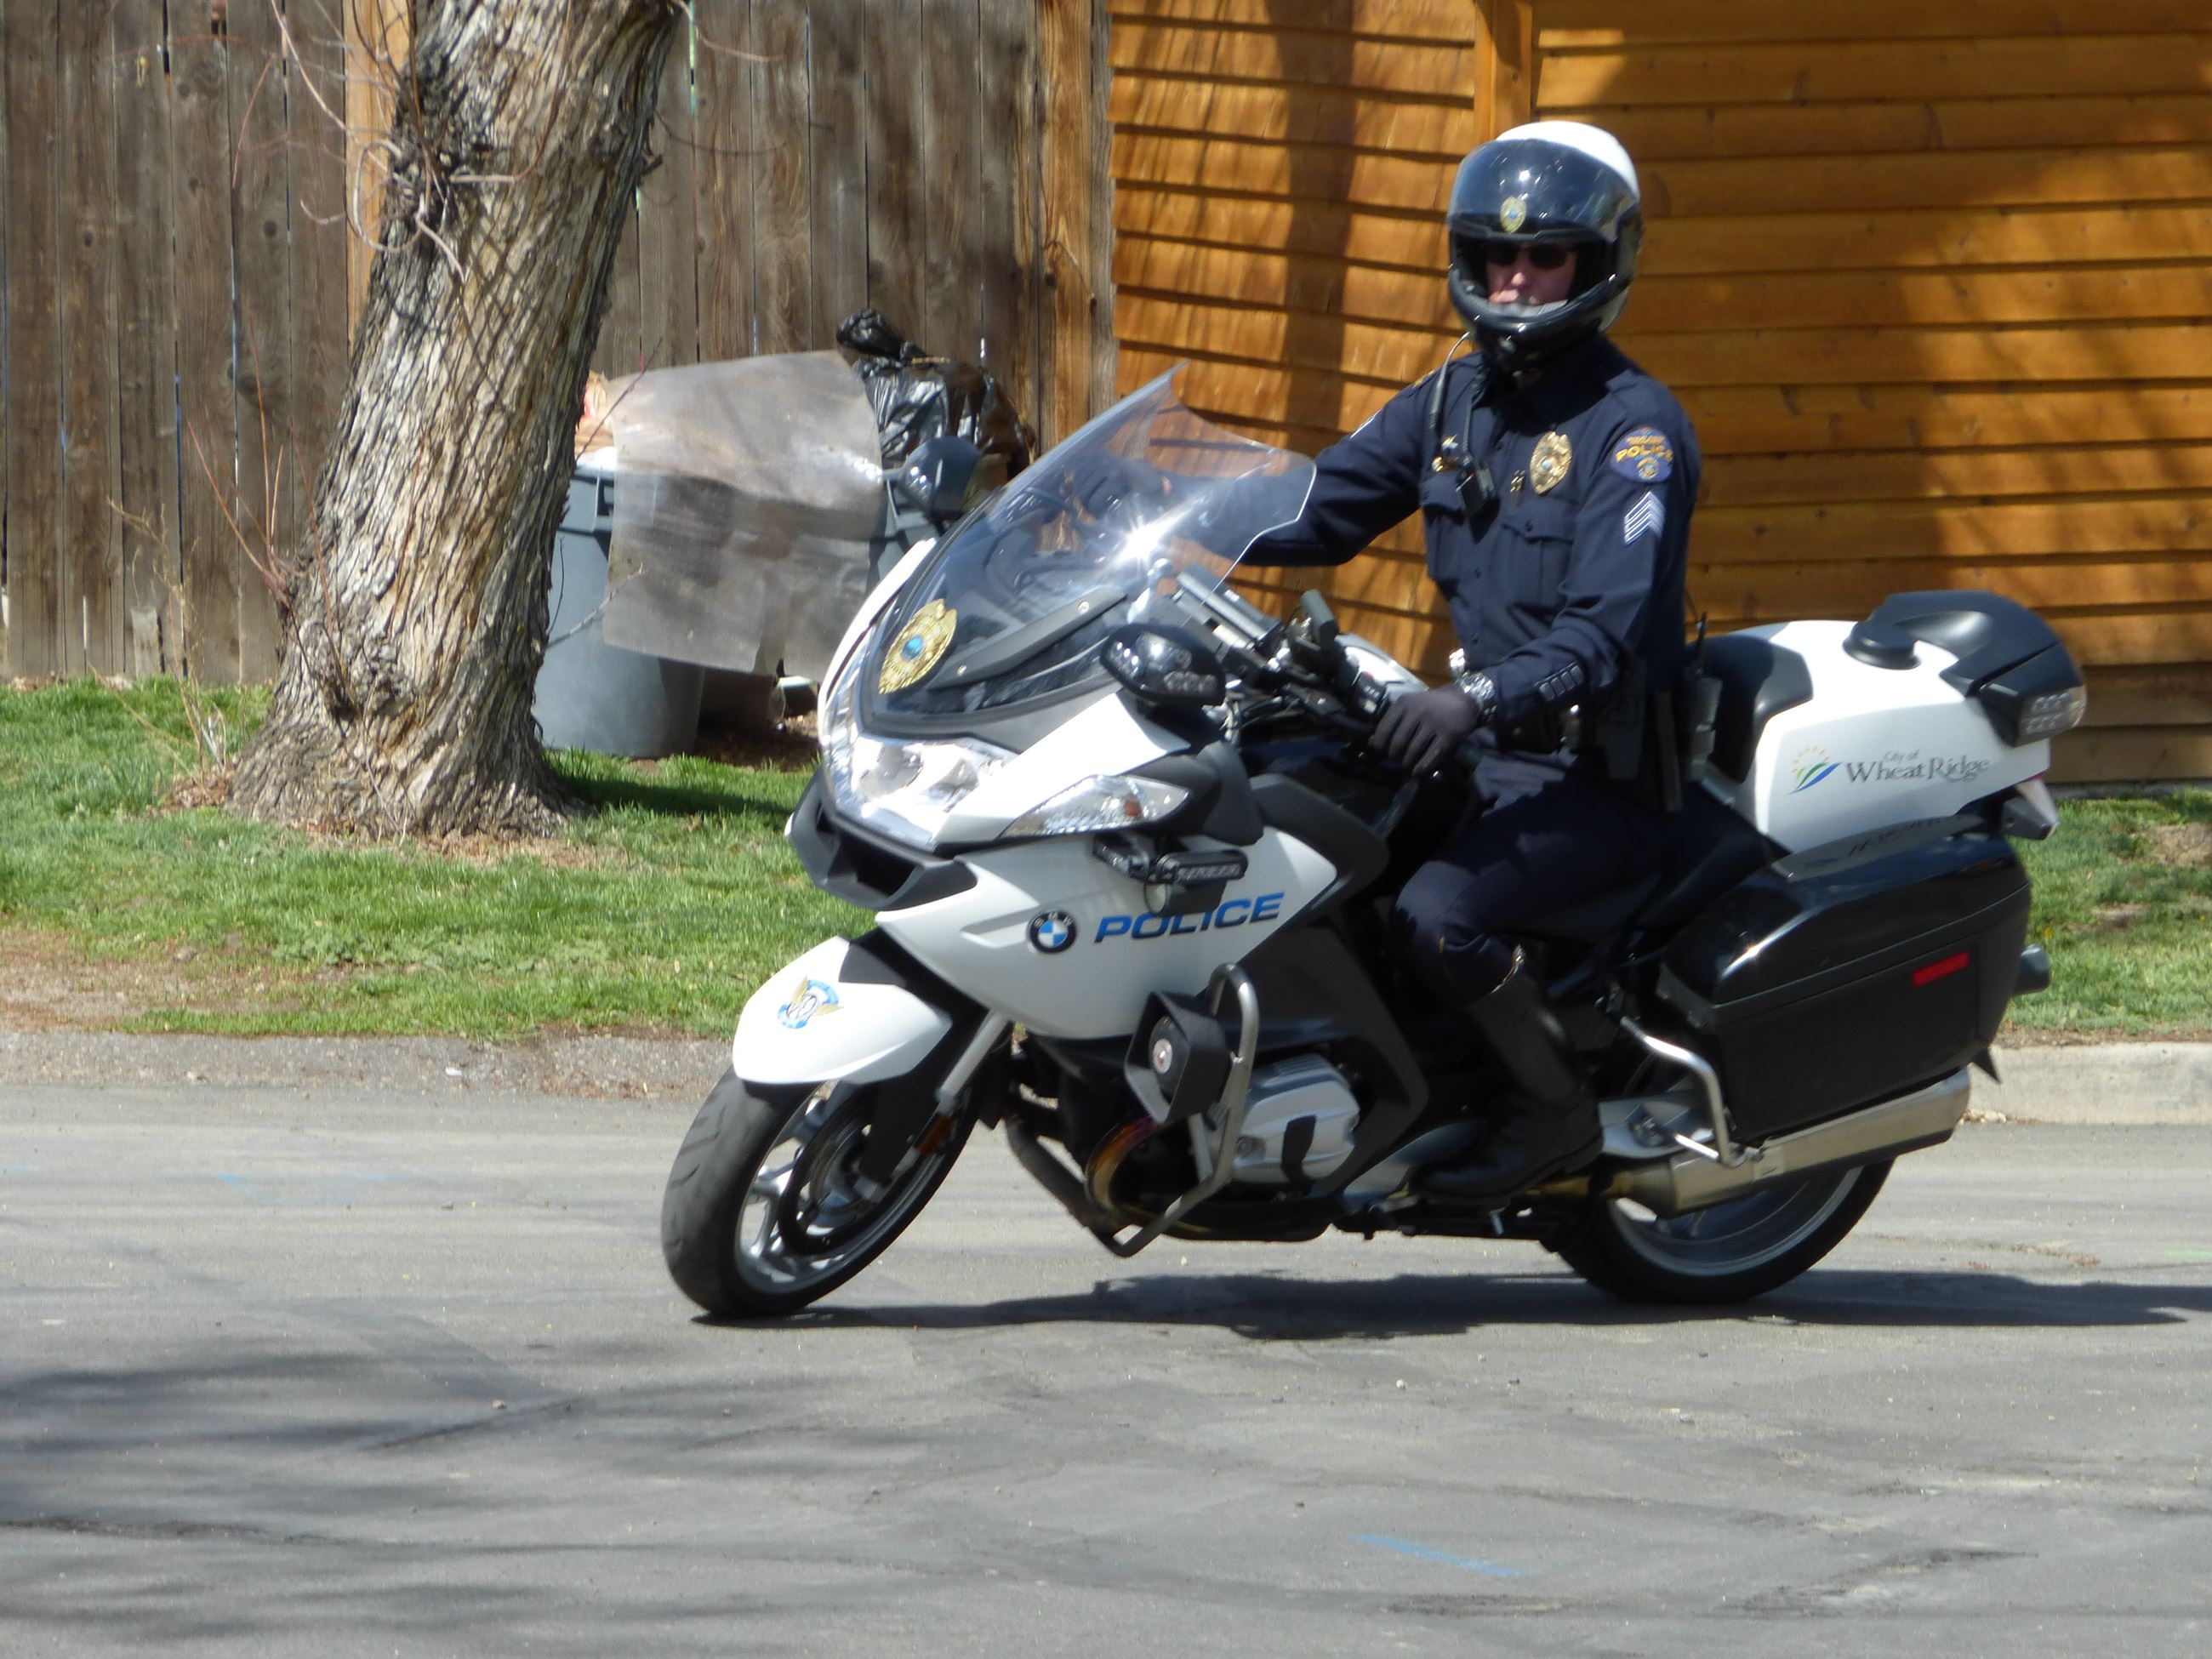 WRPD officer on motorcycle